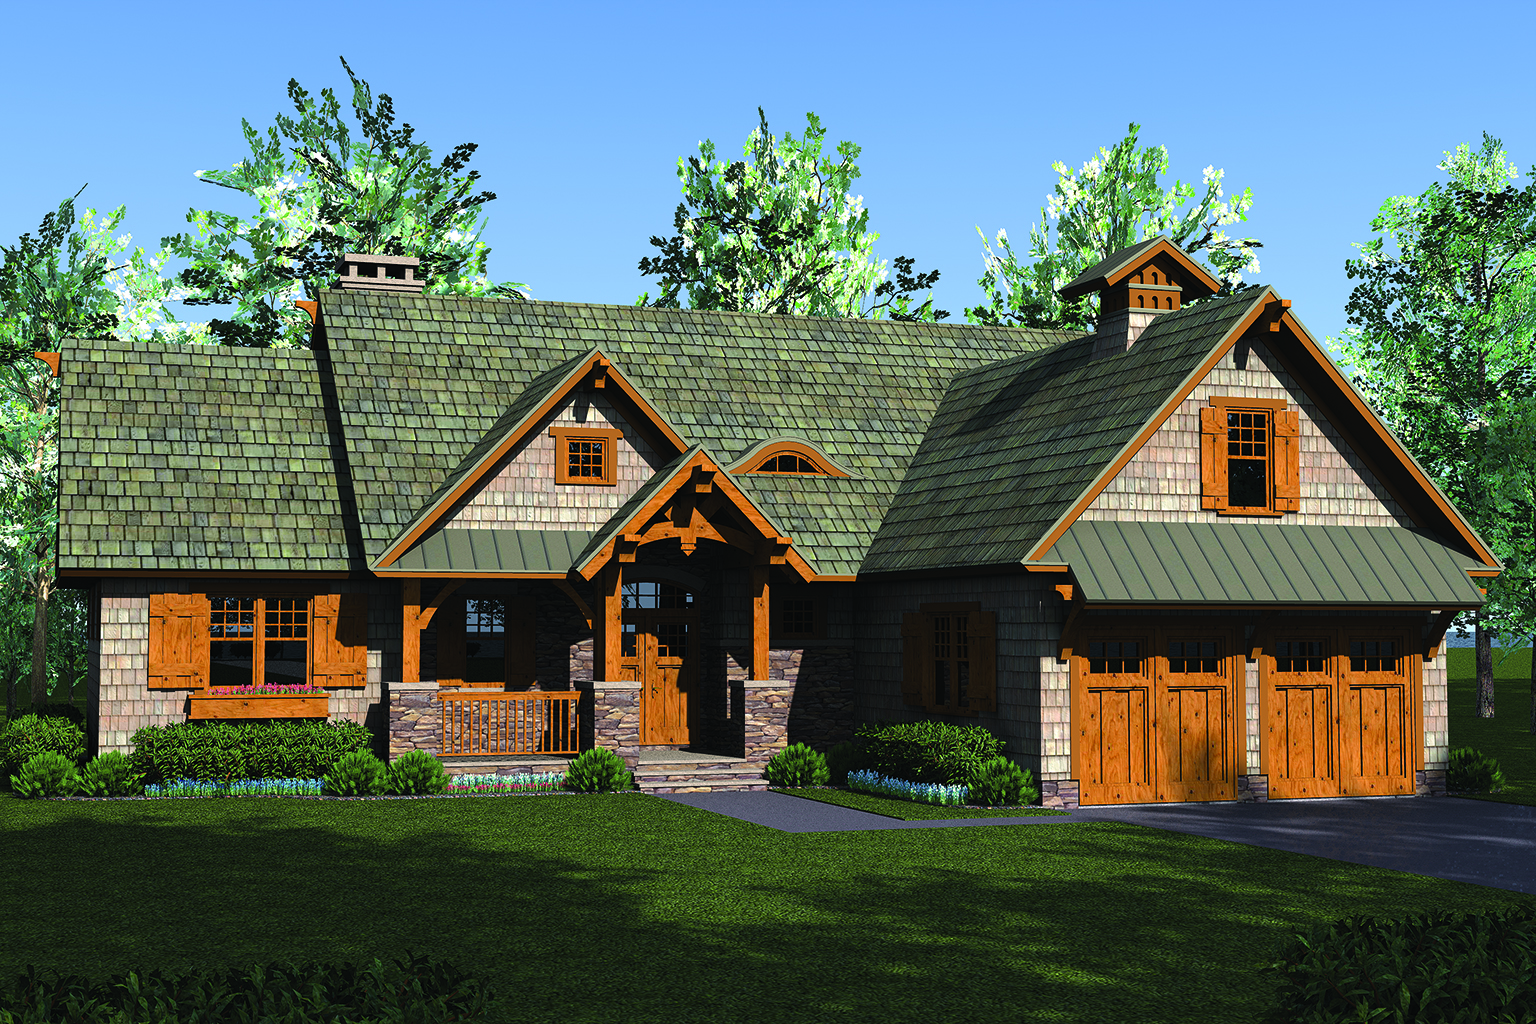 Craftsman house plan 180 1049 3 bedrm 2074 sq ft home for Rustic craftsman house plans